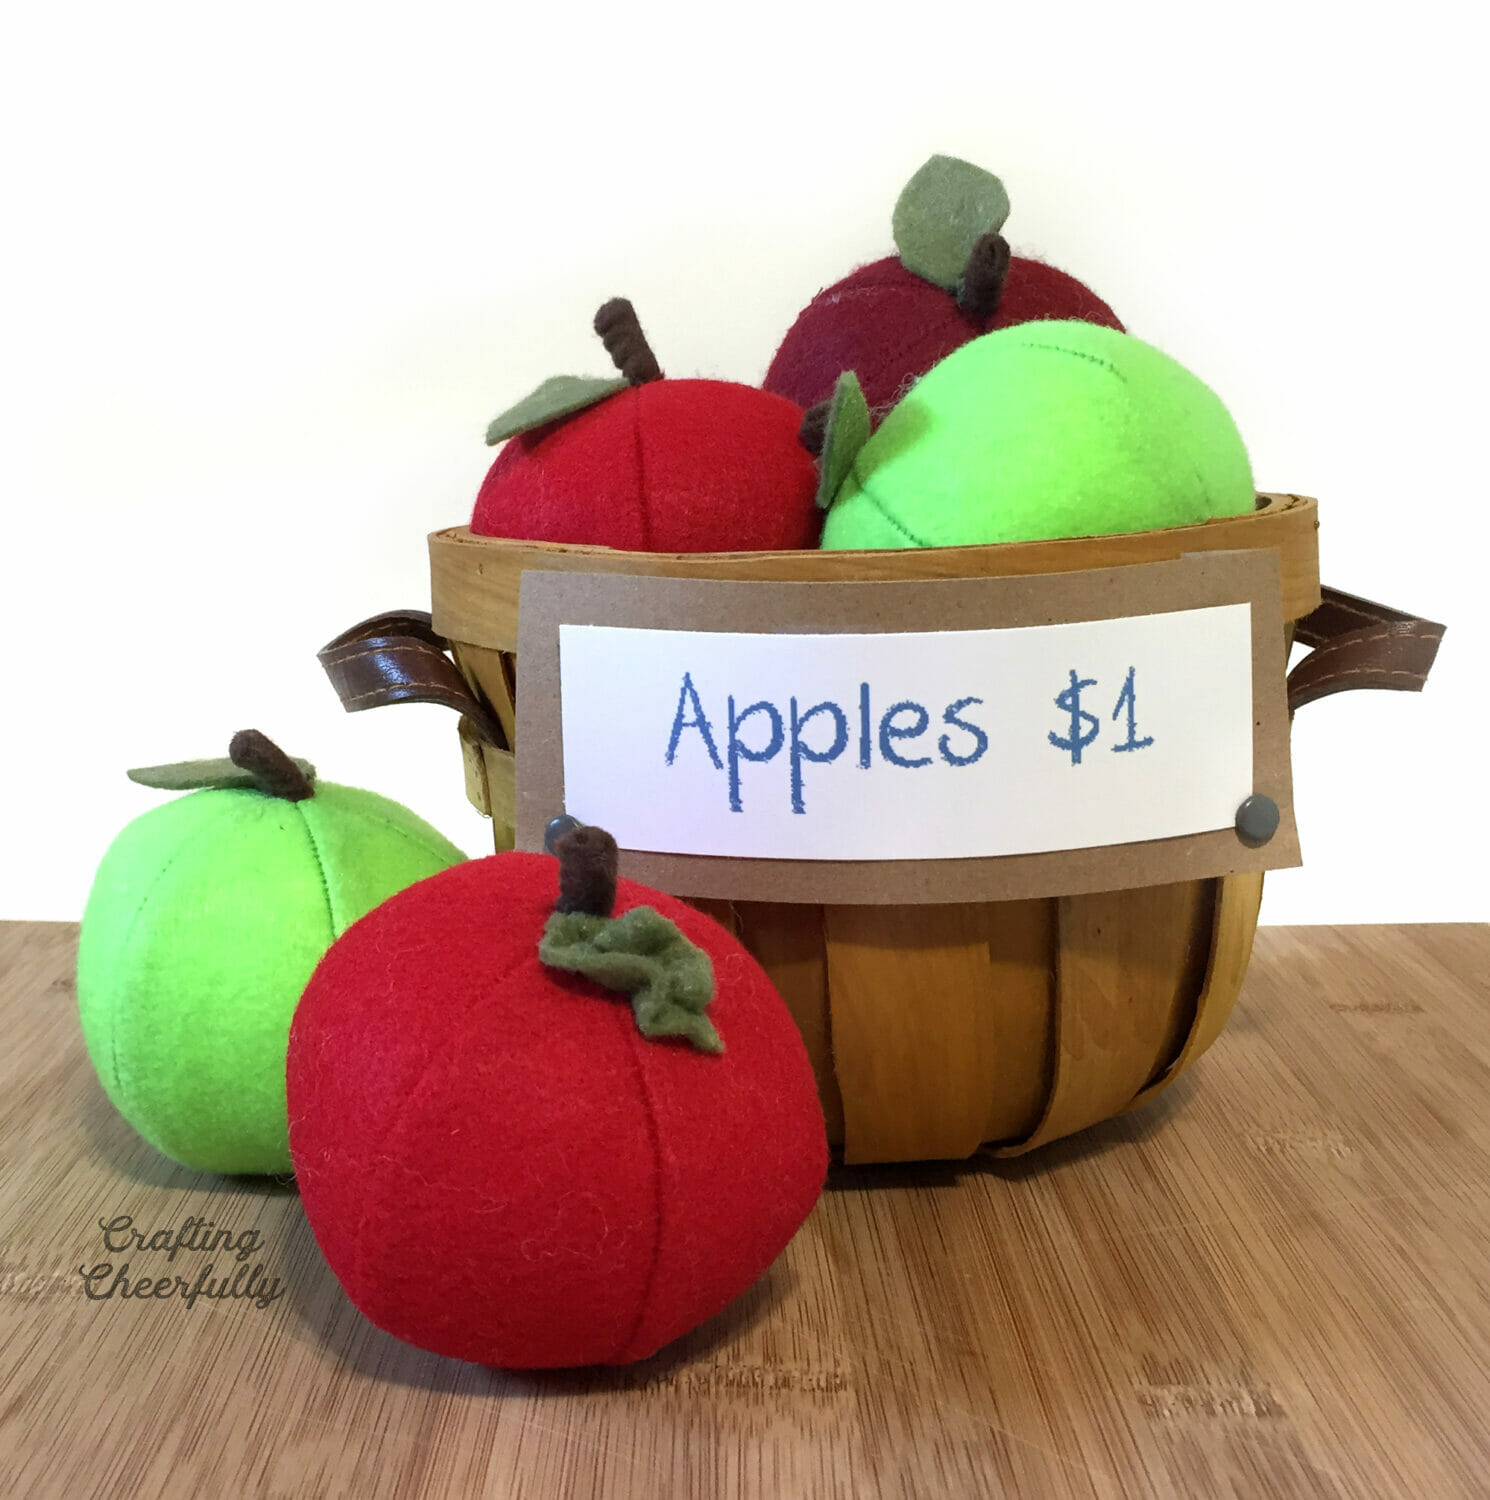 A basket of handmade felt play food apples with a sign that reads Apples $1.